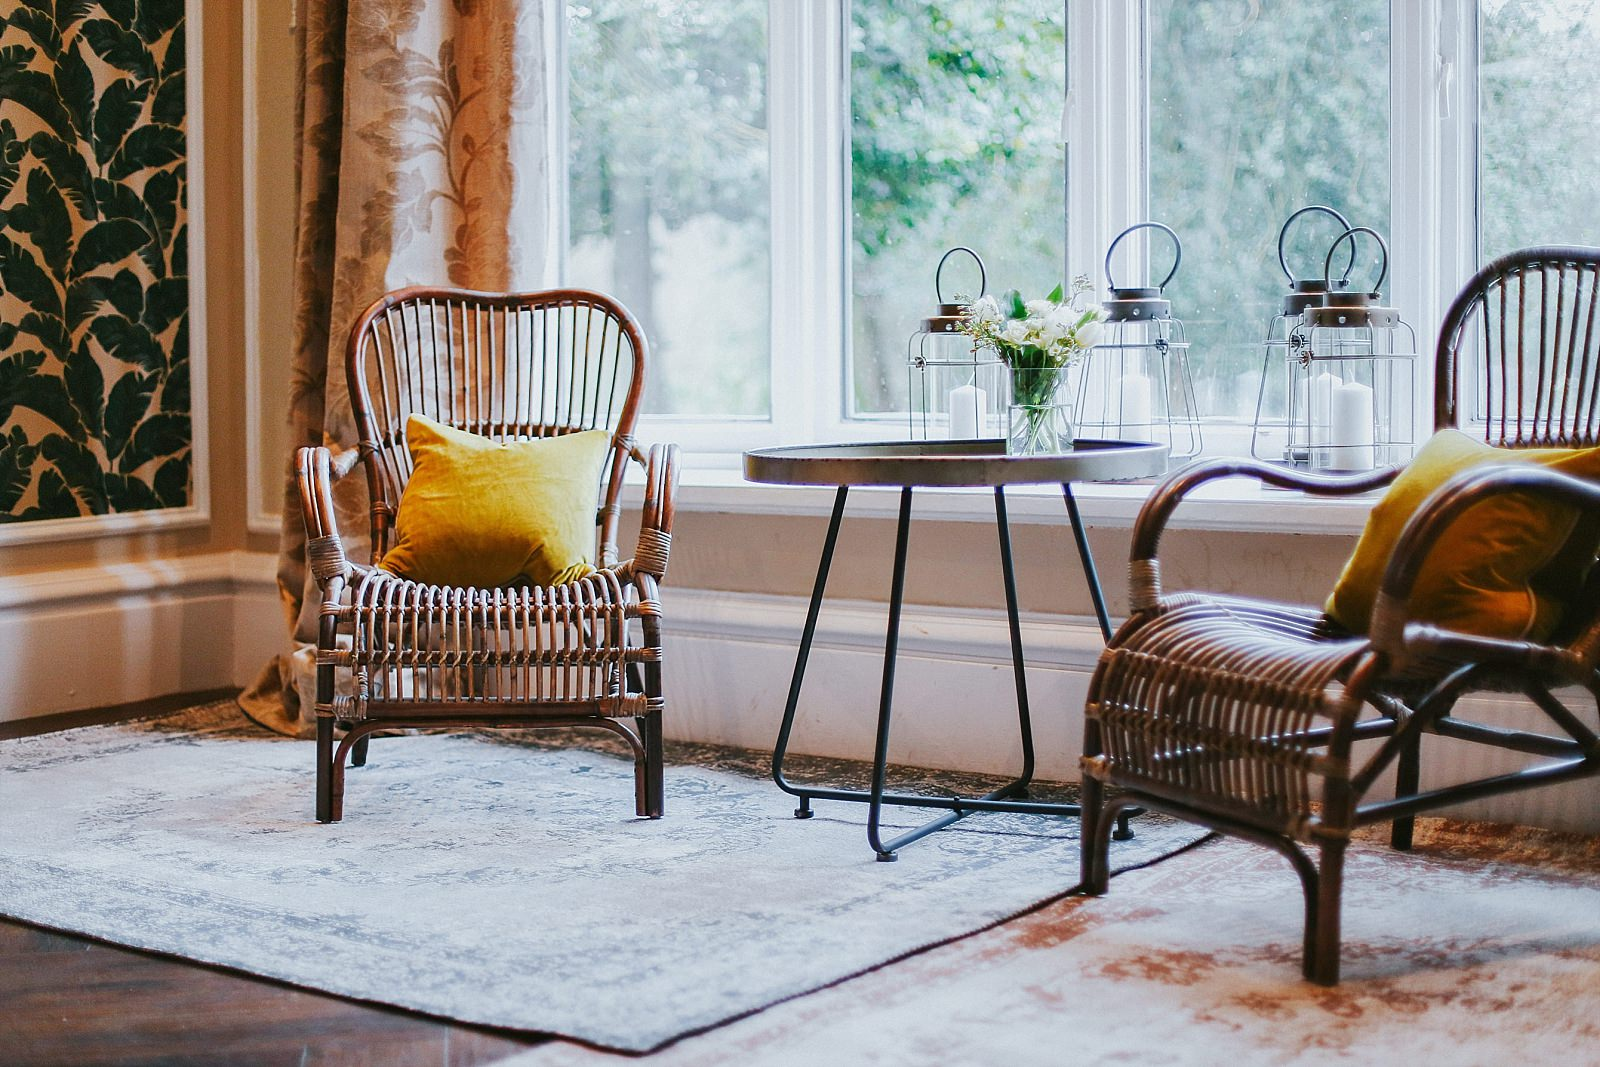 Wicker chairs in dining room with a table